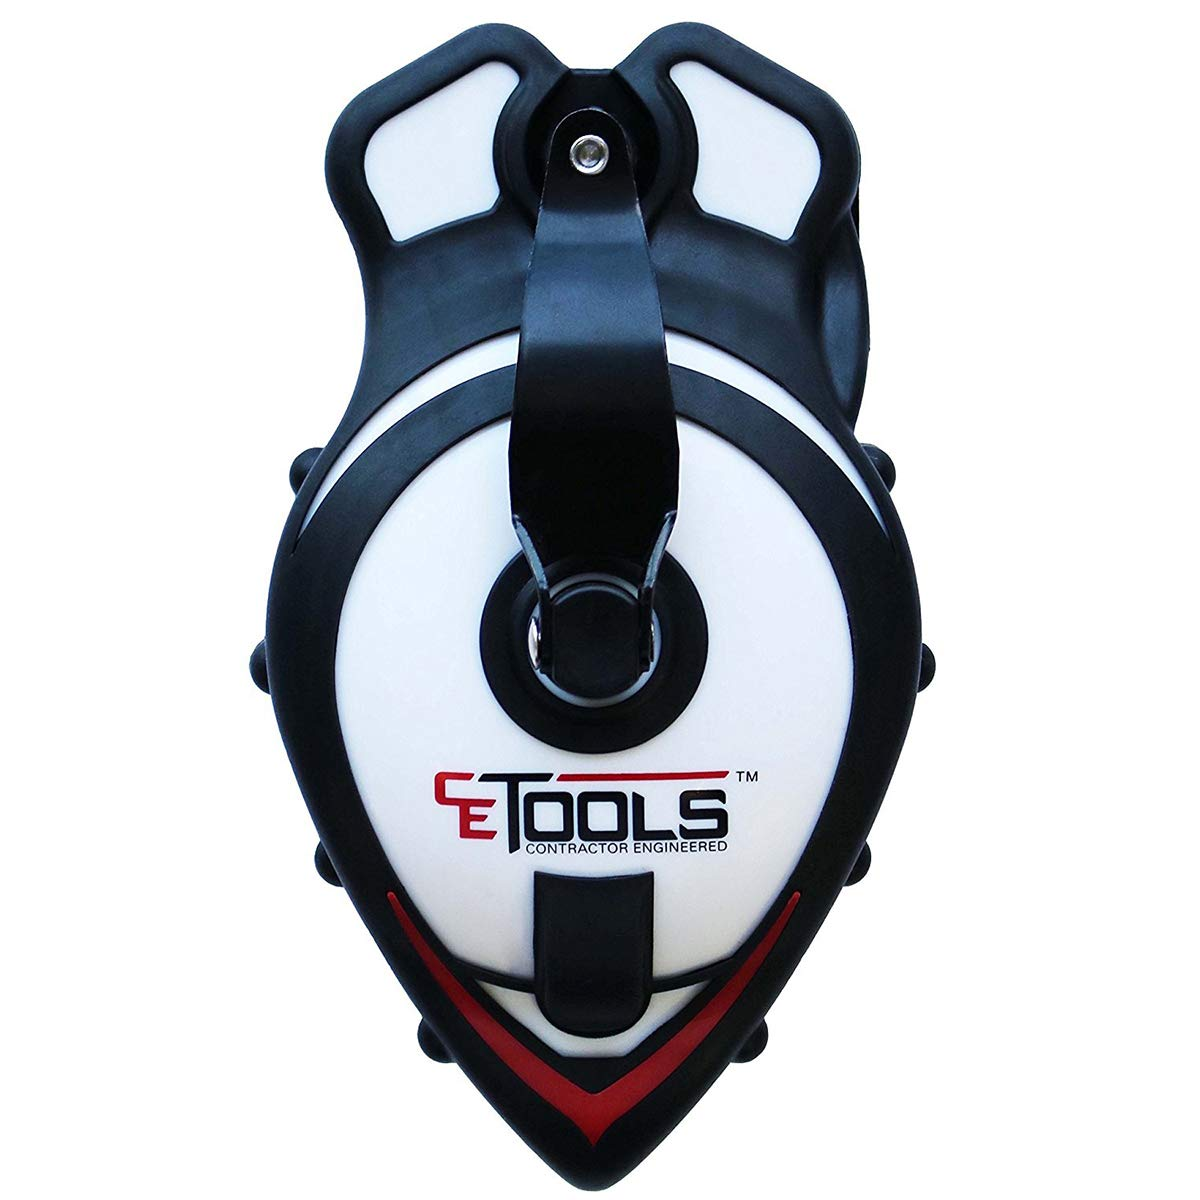 SnapBack Cordeau Traceur pointe Releasable CE TOOLS